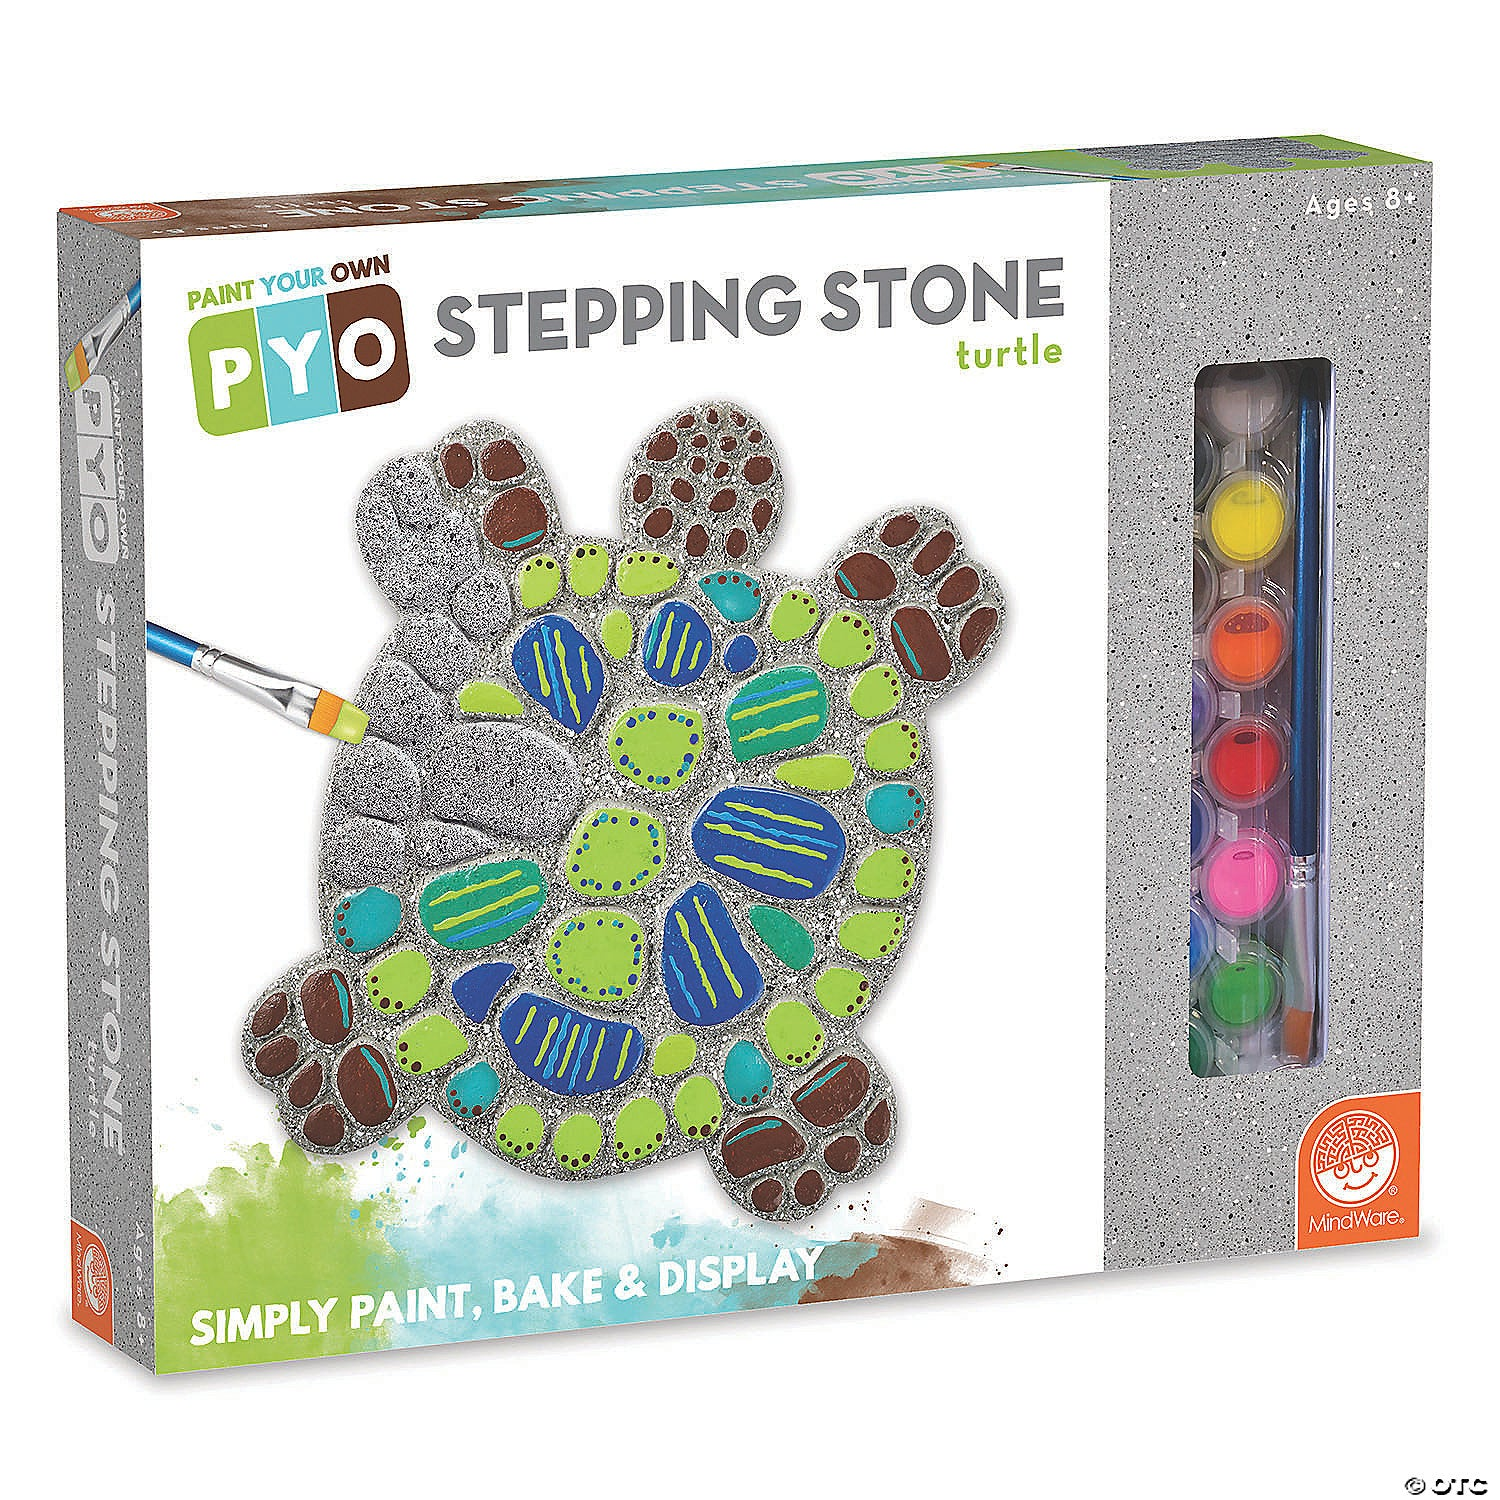 Paint Your Own Turtle Stepping Stone